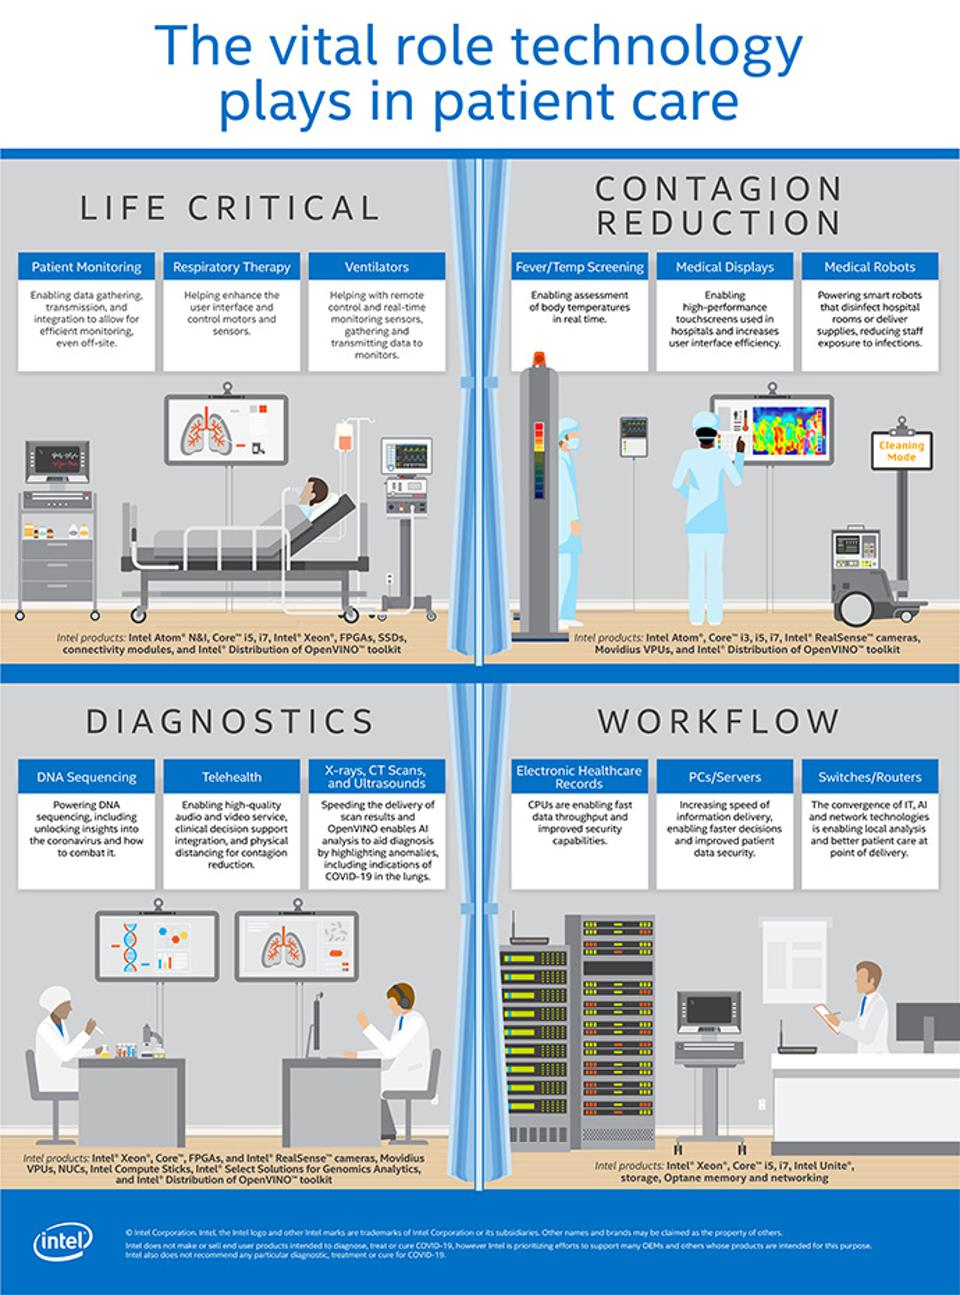 The vital role technology plays in patient care.